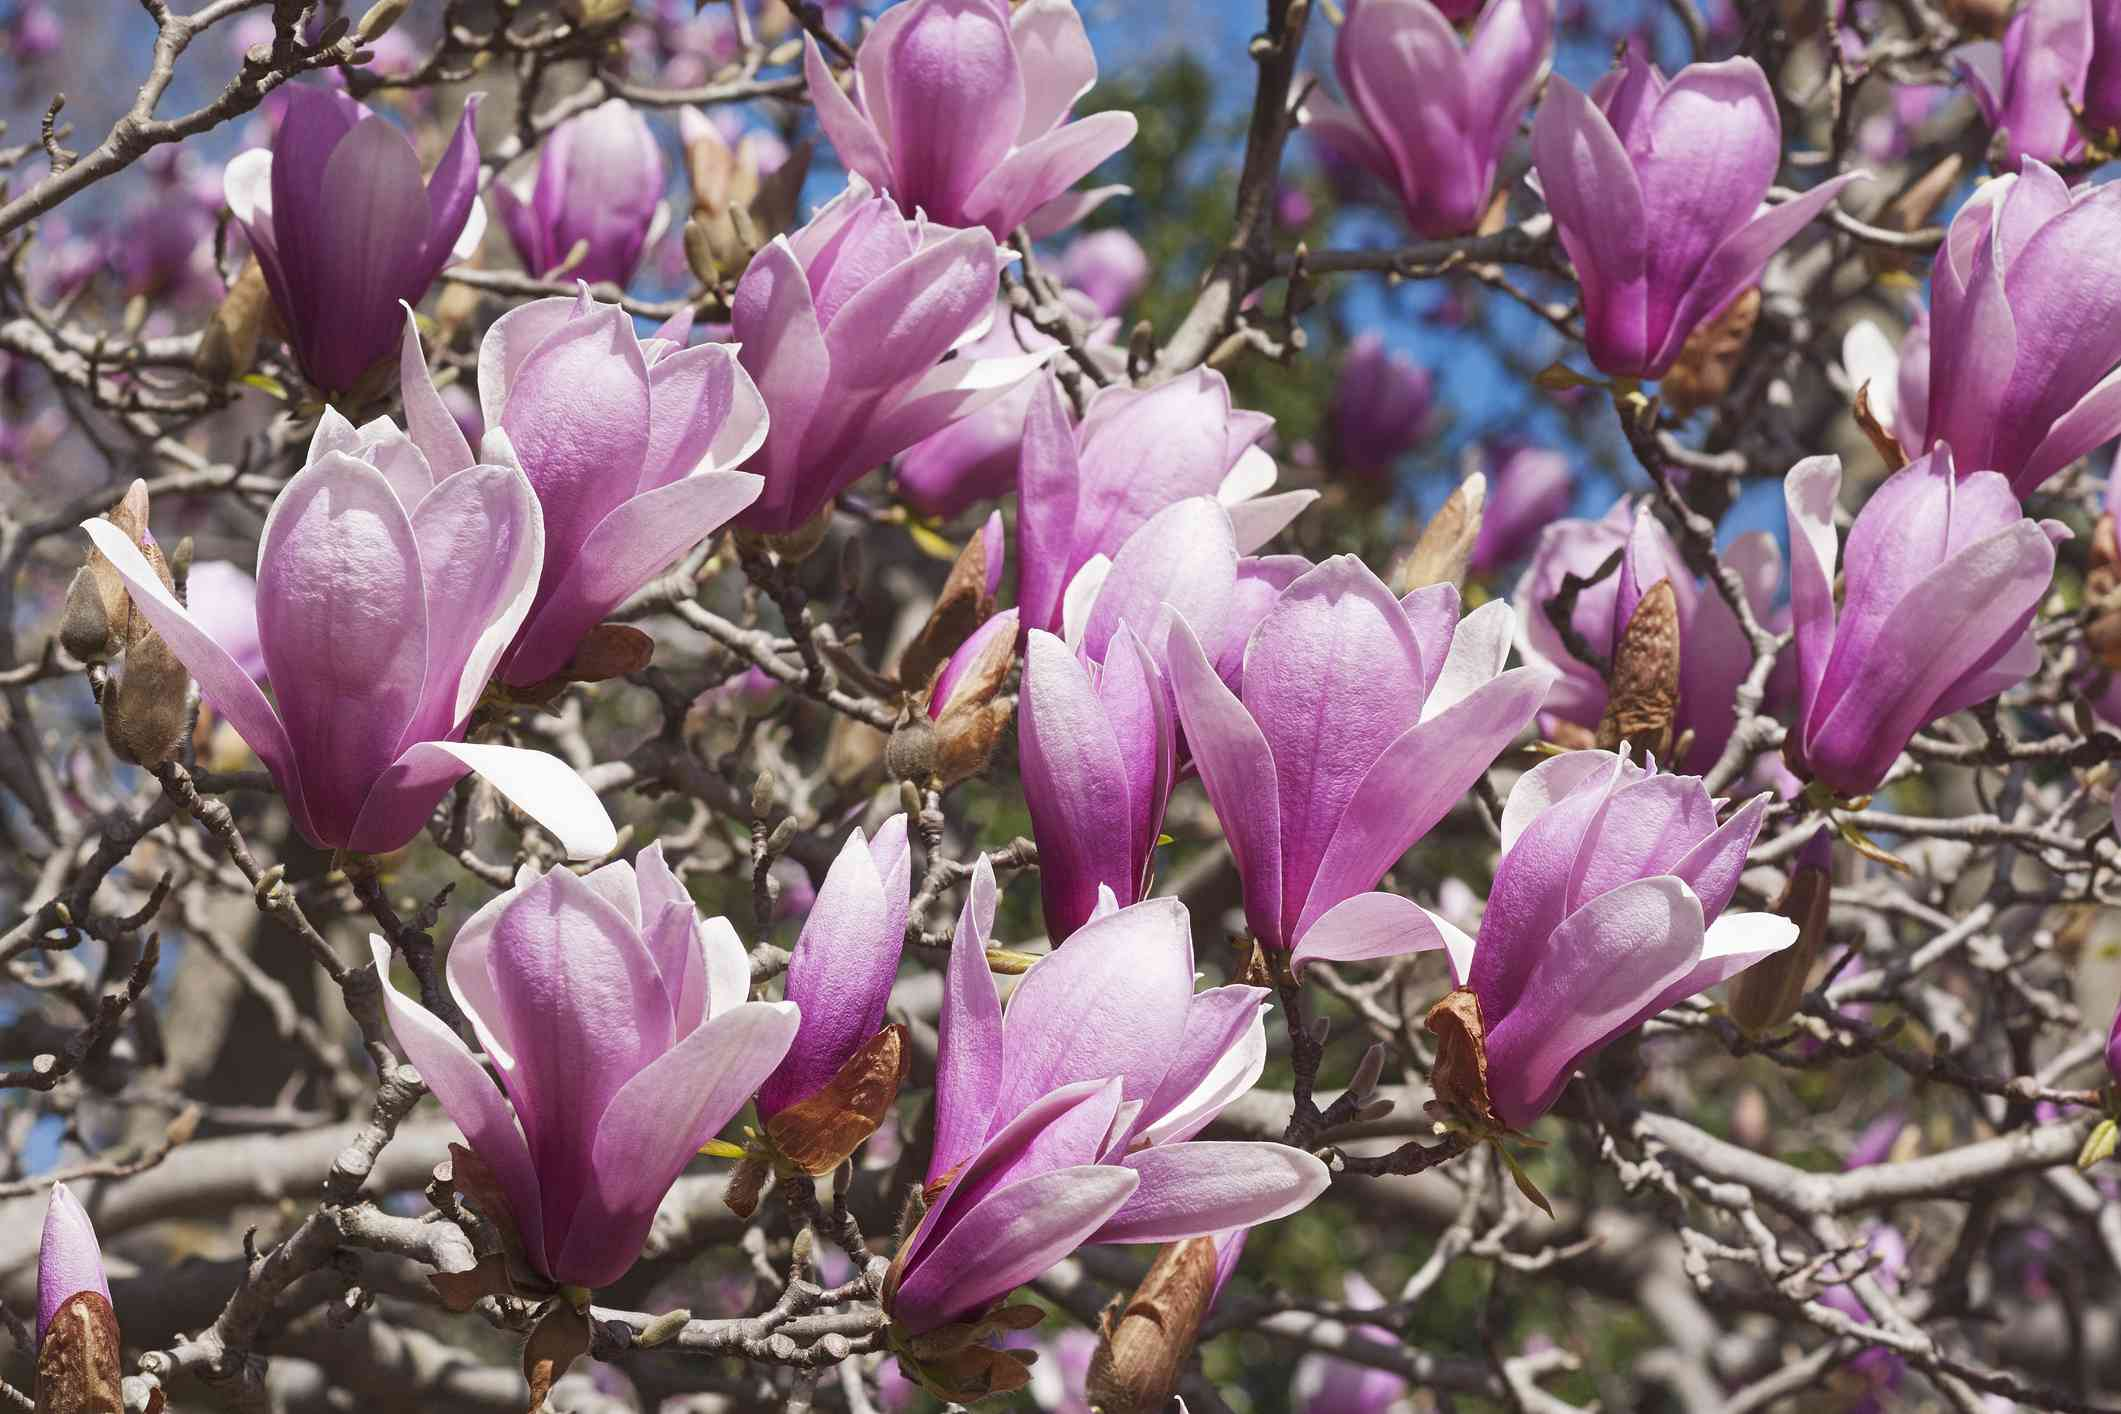 Pink blossoms on a Verbanica saucer magnolia tree.